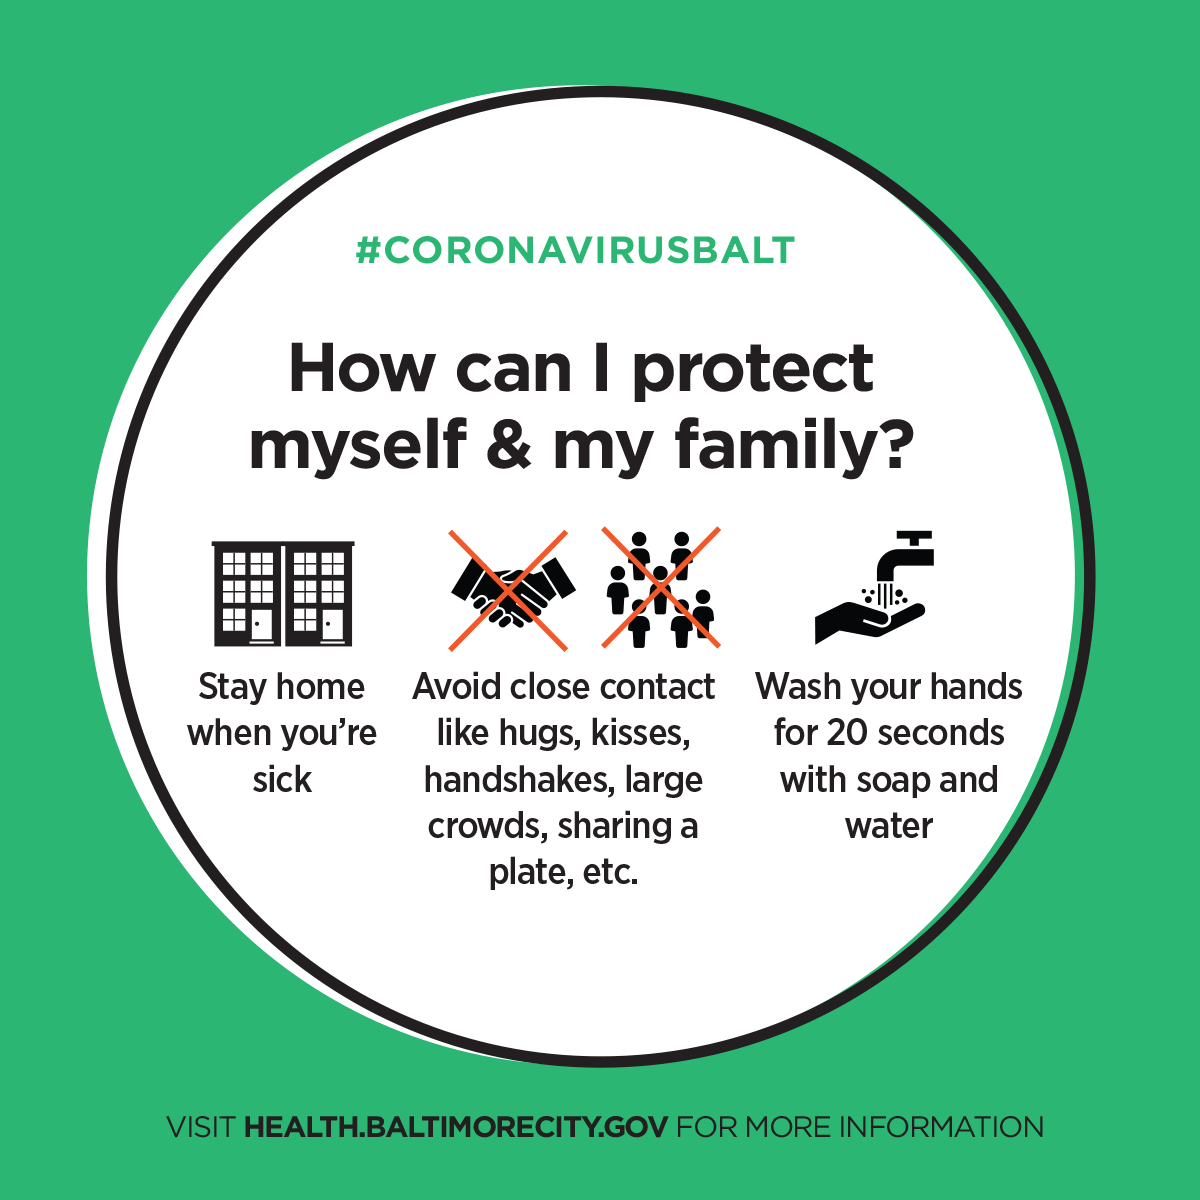 How can I protect myself?  Stay home when you are sick, avoid close contact and wash your hands